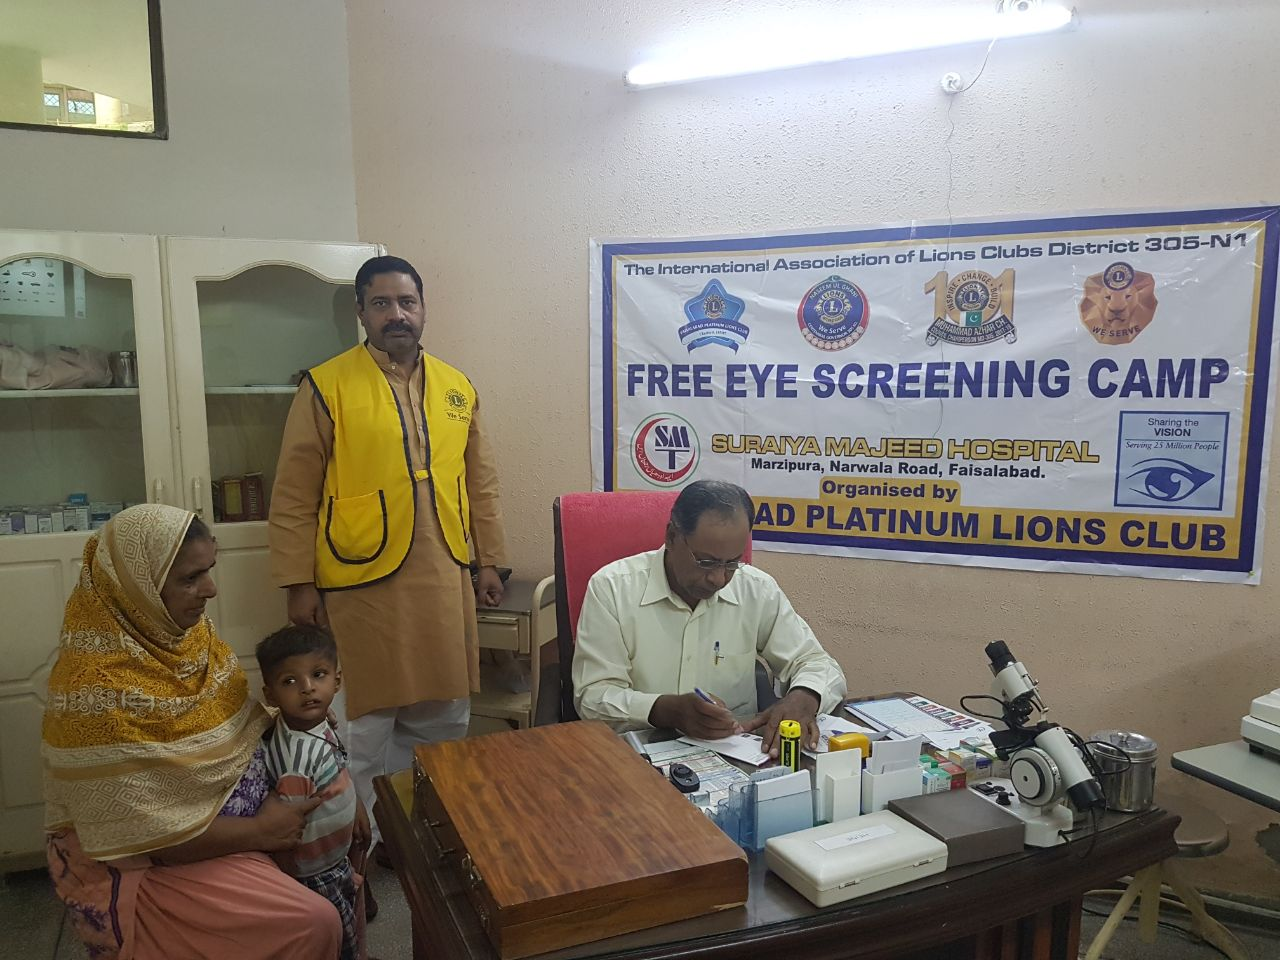 WE DO CARE ABOUT YOUR EYE SIGHT